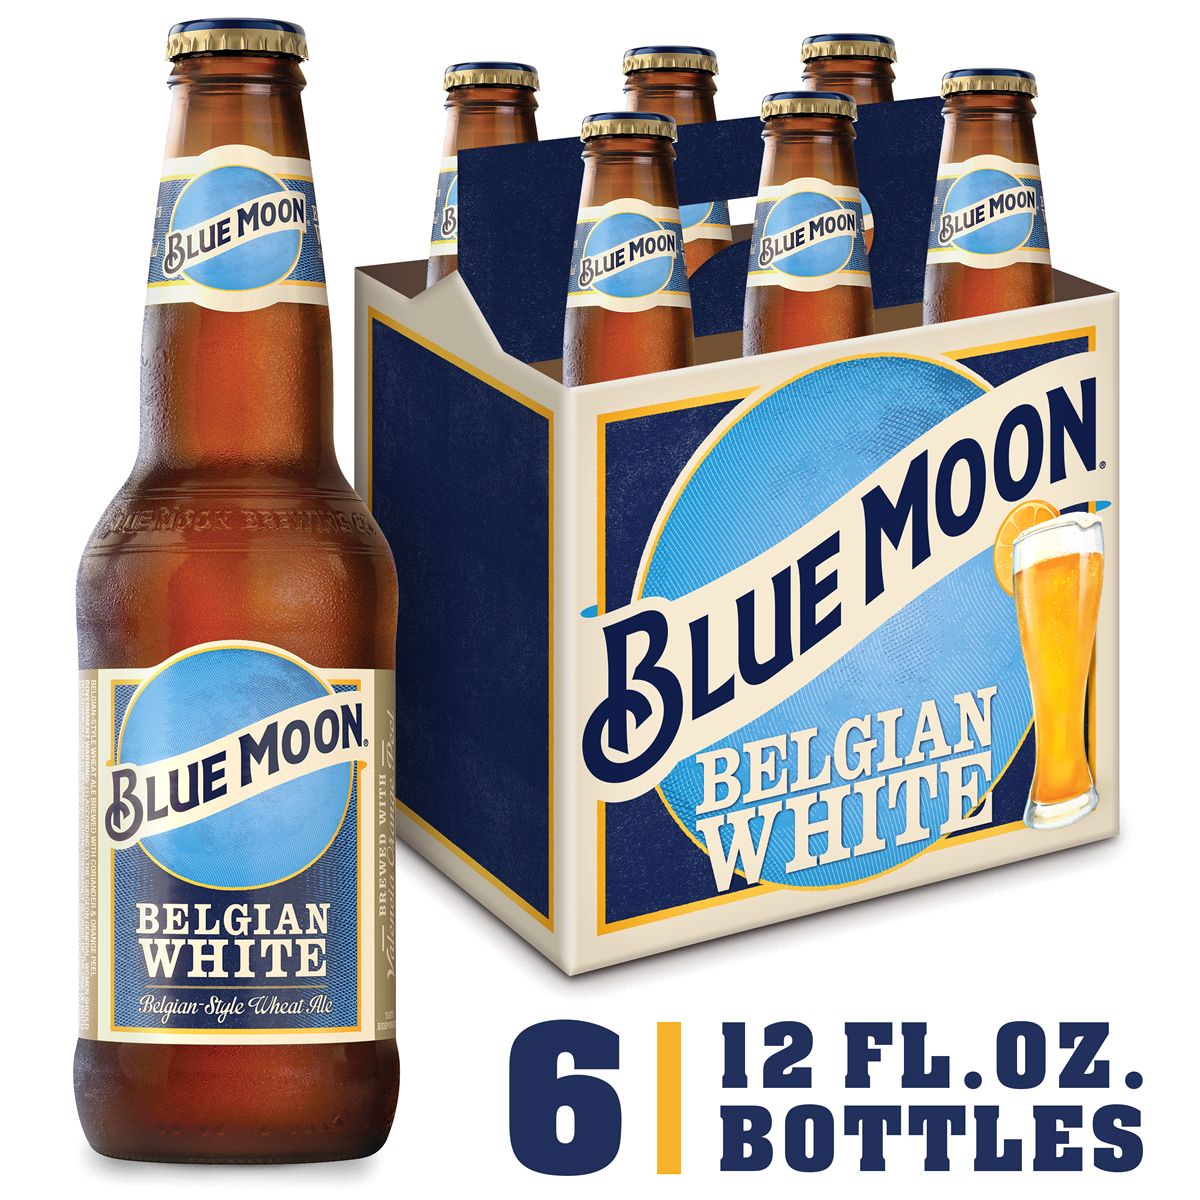 Blue Moon Belgian White Belgian Style Wheat Ale Beer, 6 Pack, 12 fl.